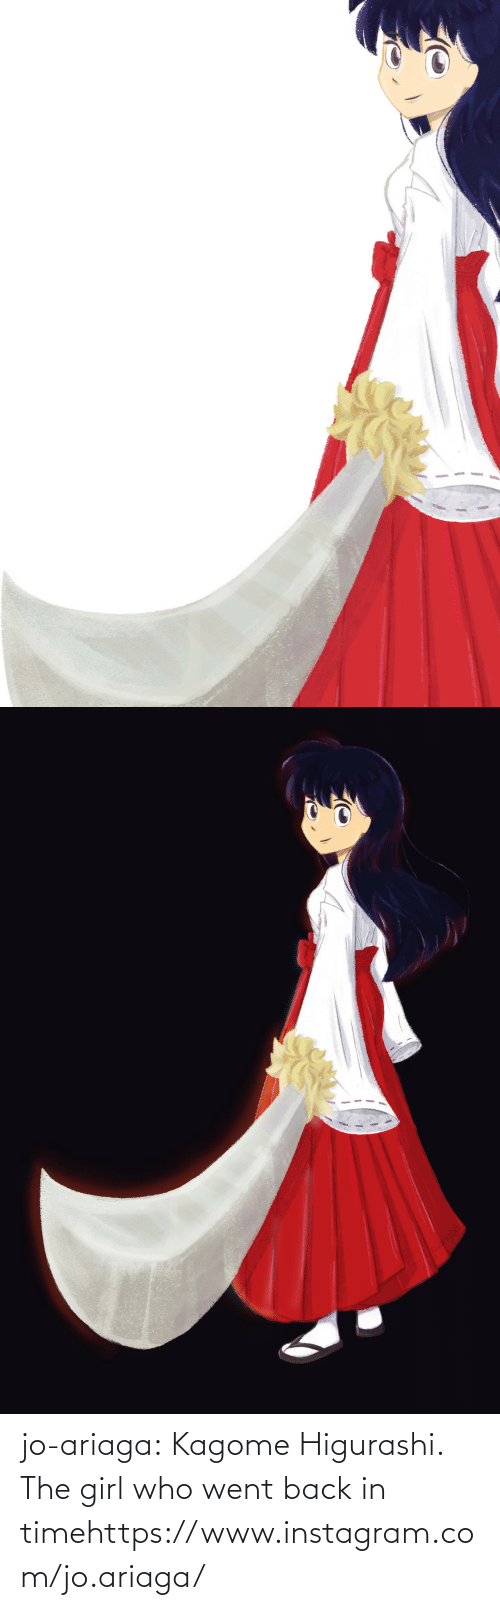 Instagram, Target, and Tumblr: jo-ariaga:  Kagome Higurashi. The girl who went back in timehttps://www.instagram.com/jo.ariaga/